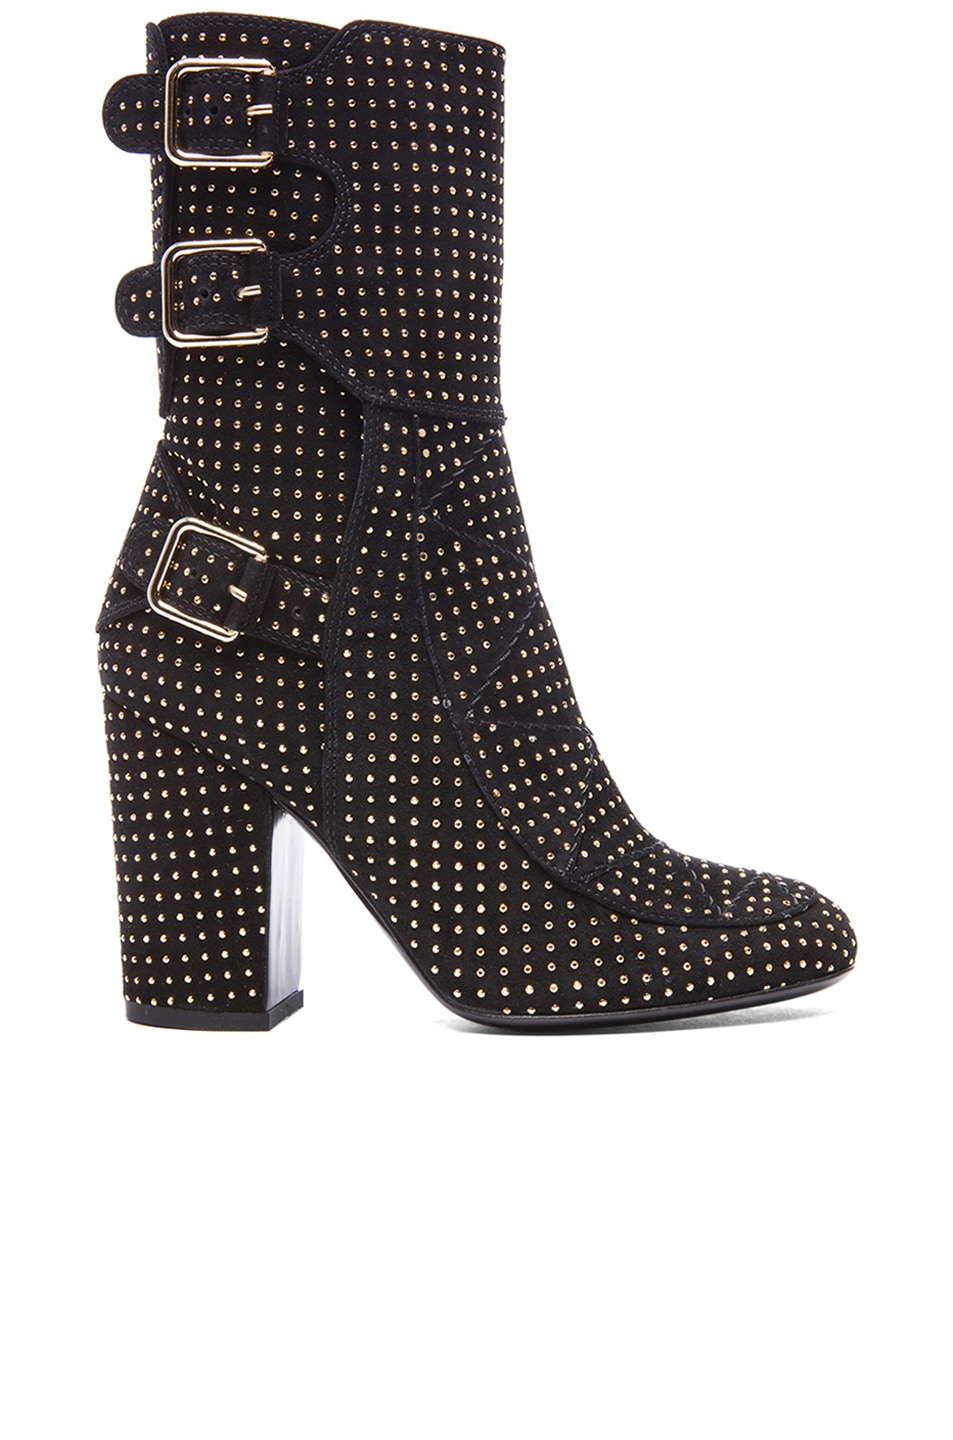 Image 1 of Laurence Dacade Merli Suede Studded Boots in Black & Gold